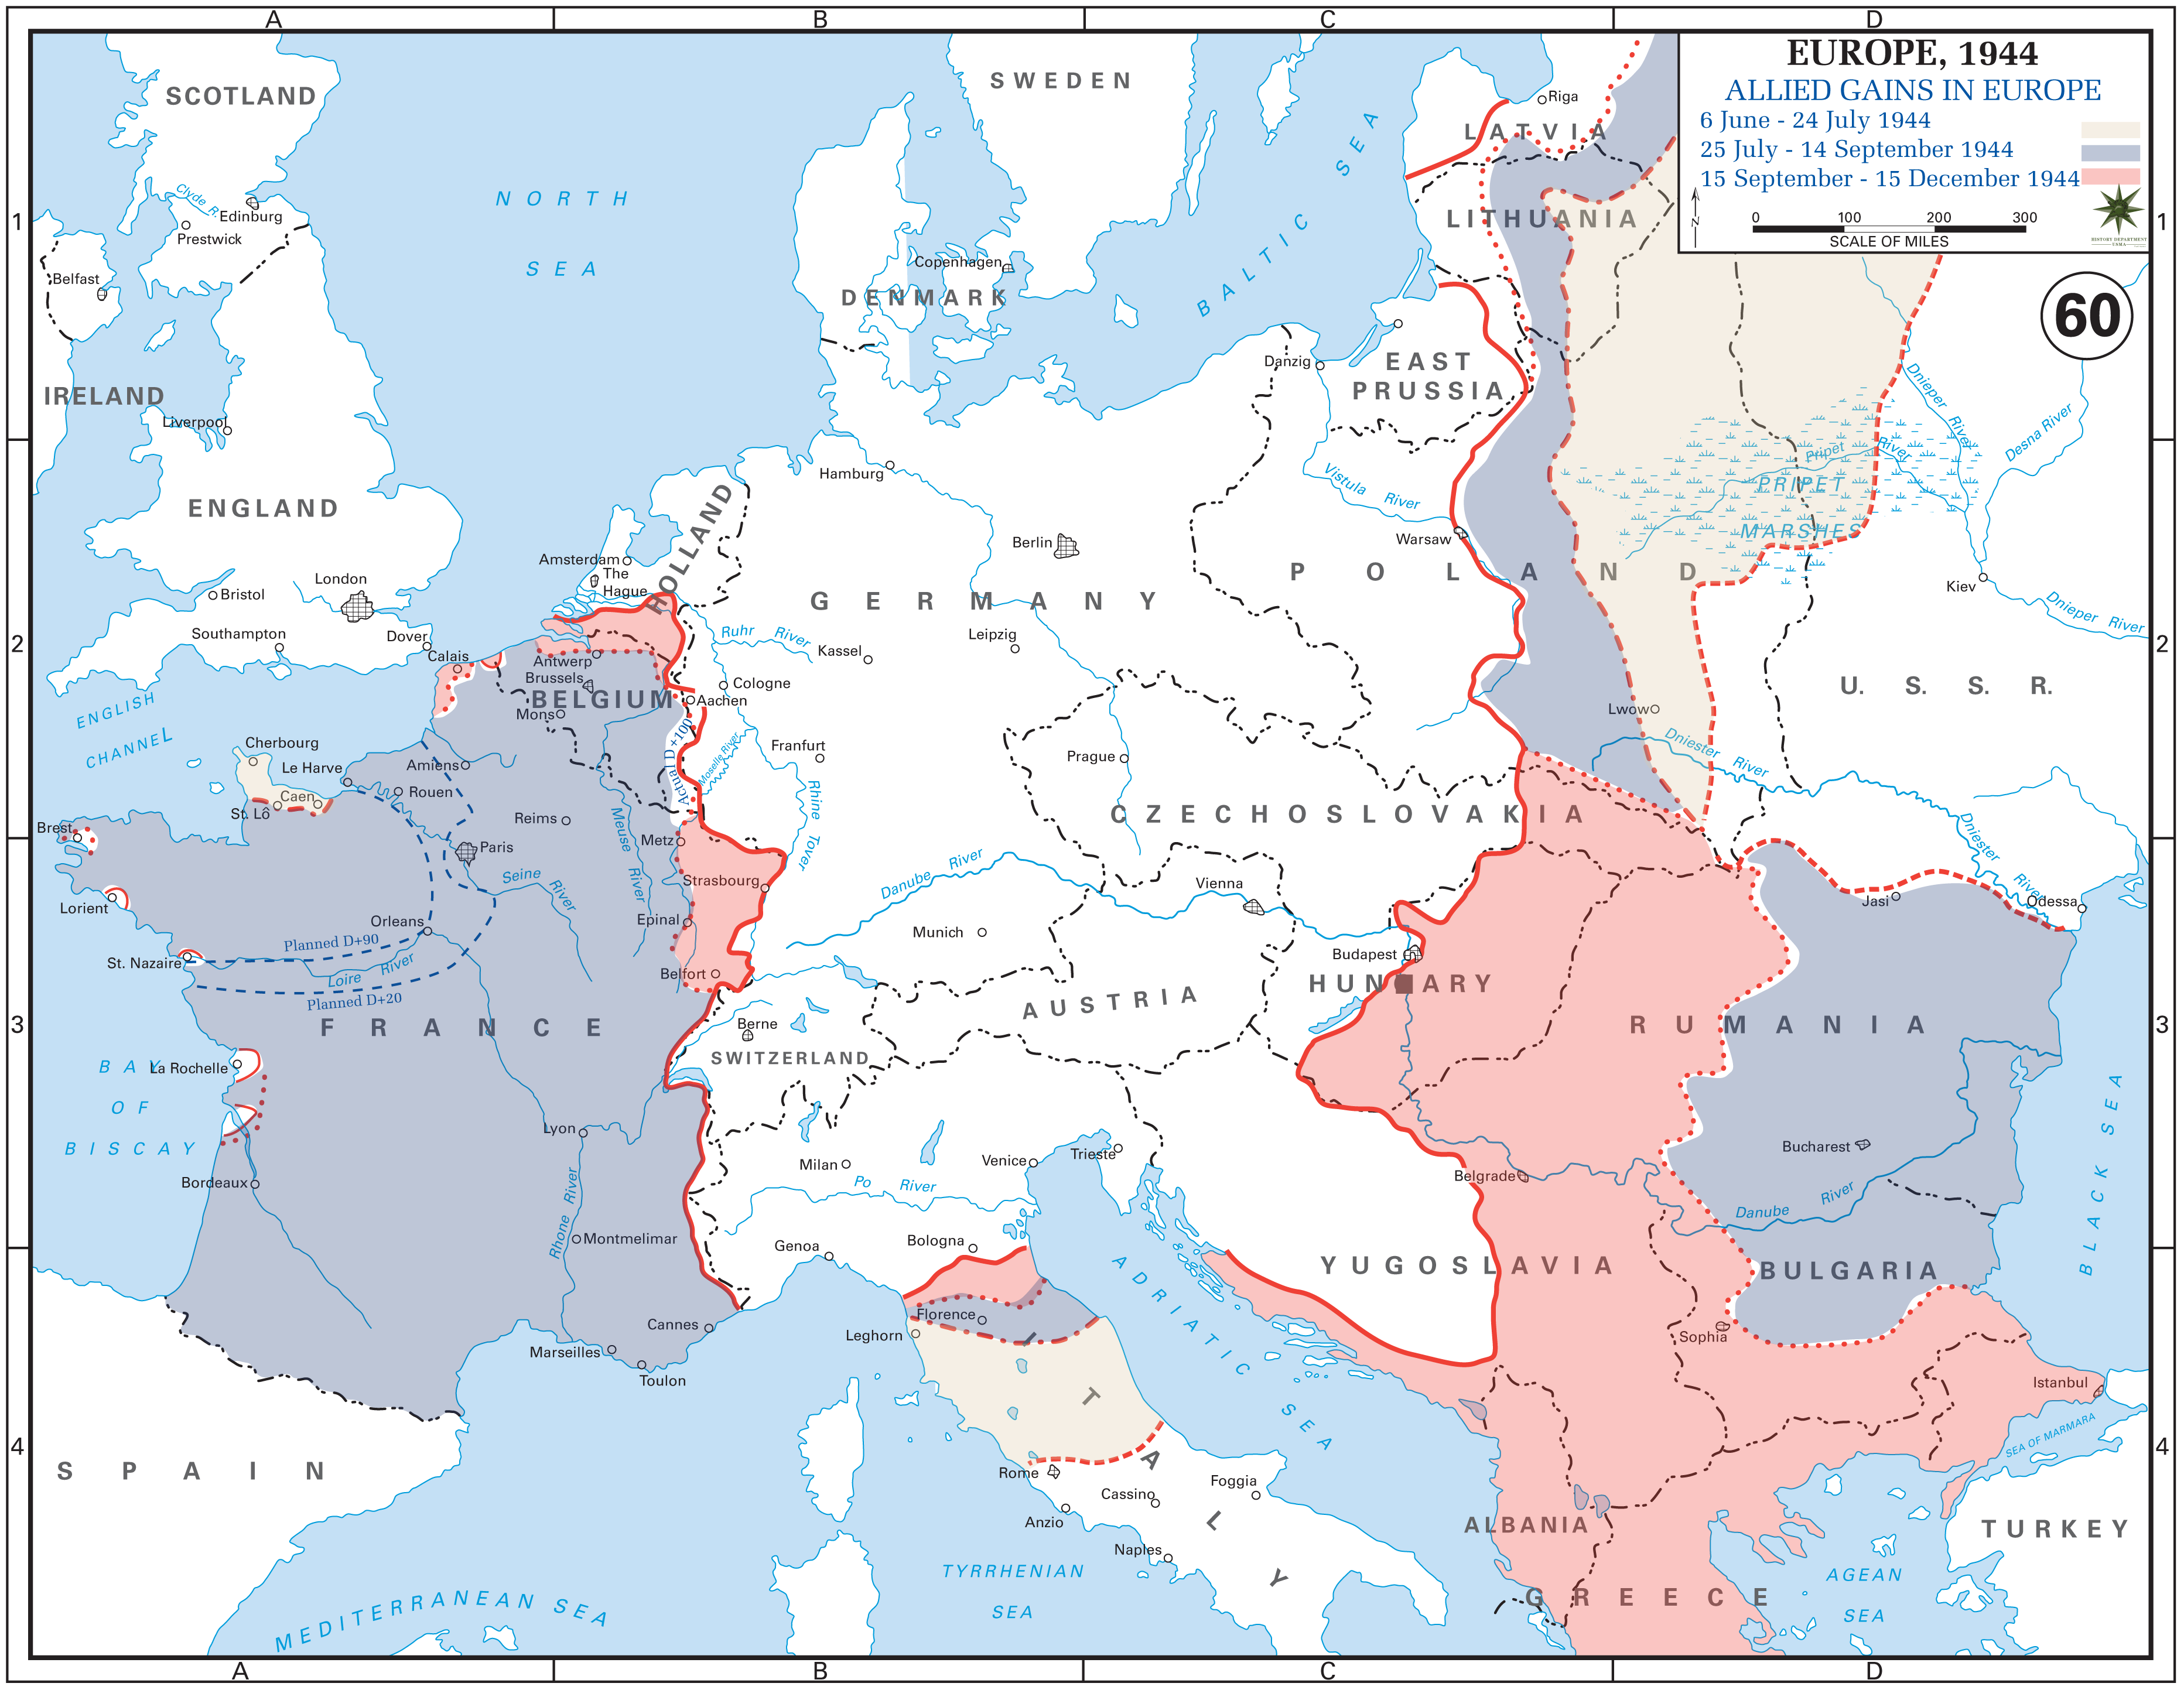 Allied gains in Europe between June and December 1944.